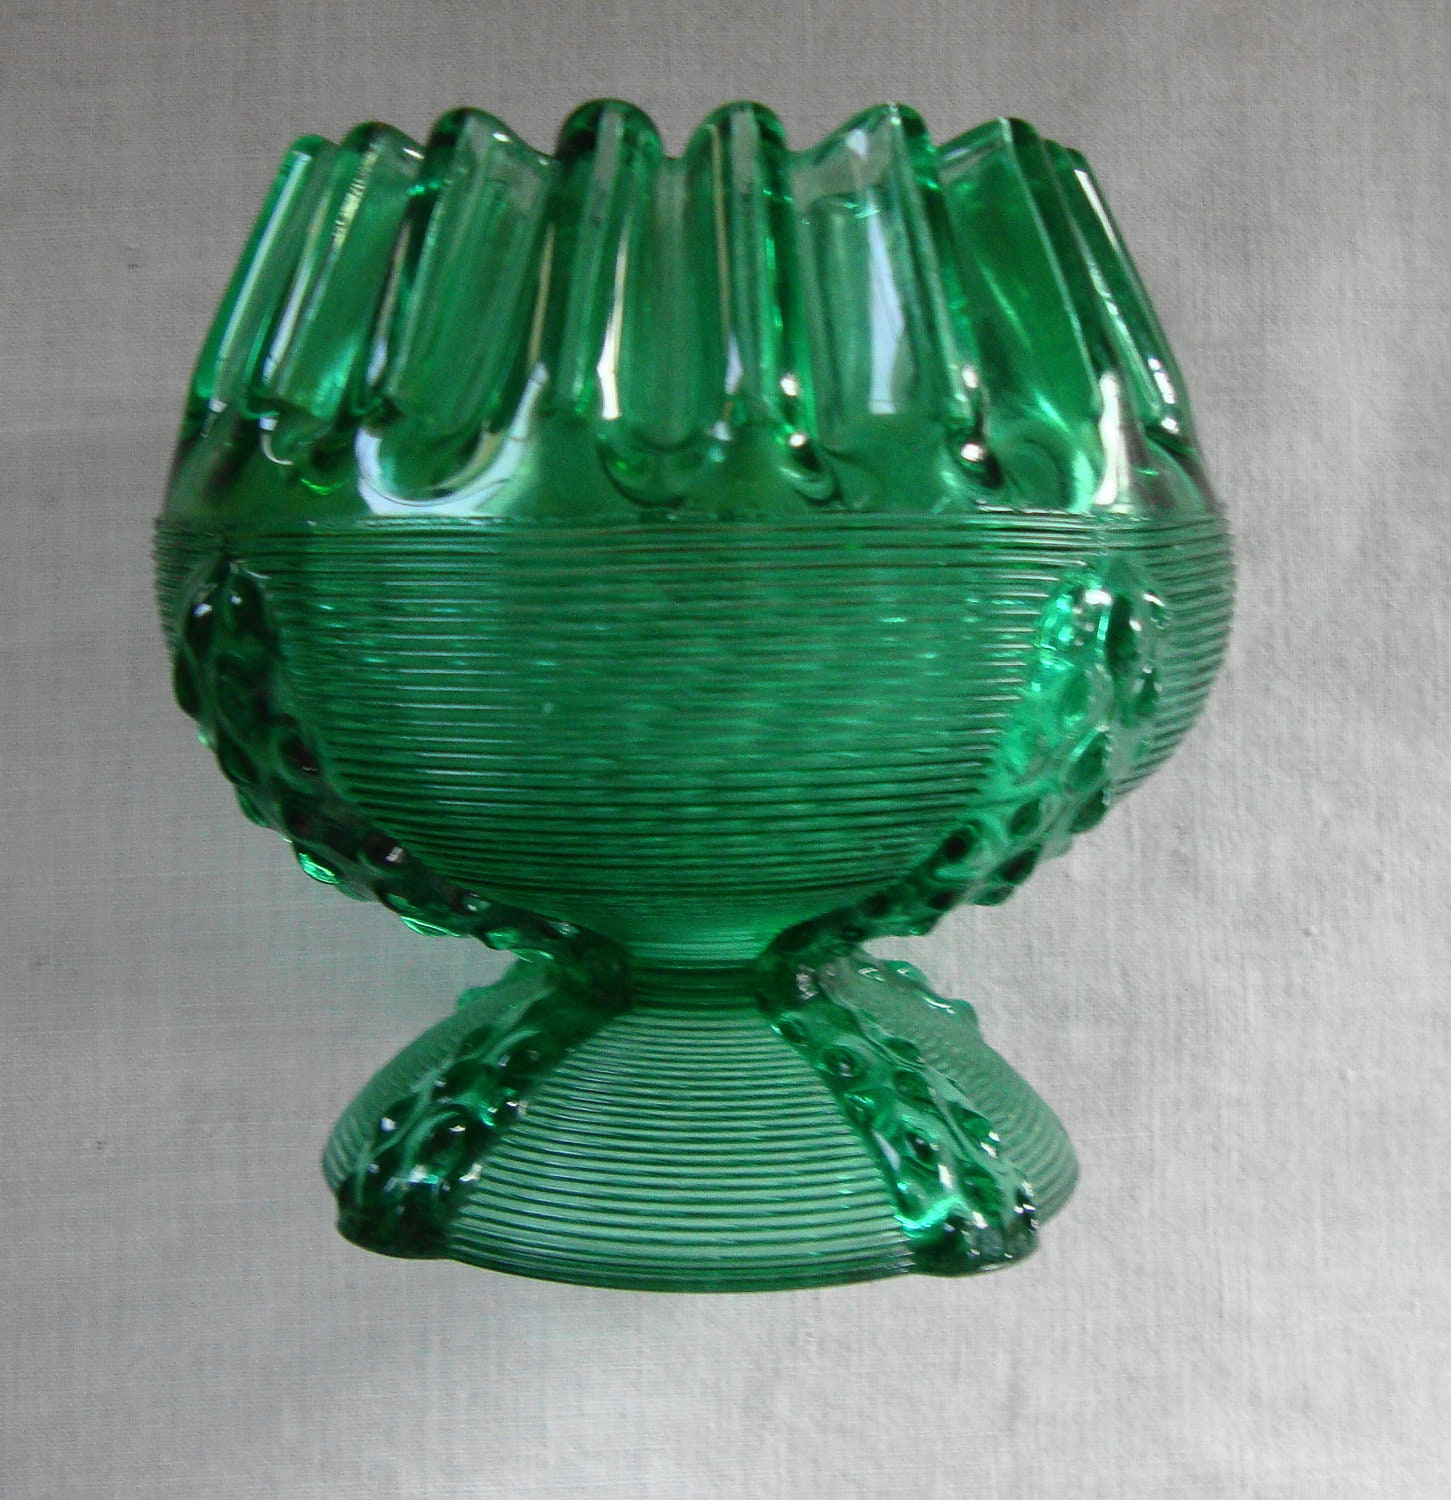 ANTIQUE DEPRESSION GLASS Art Deco Emerald Green Glass Blossom